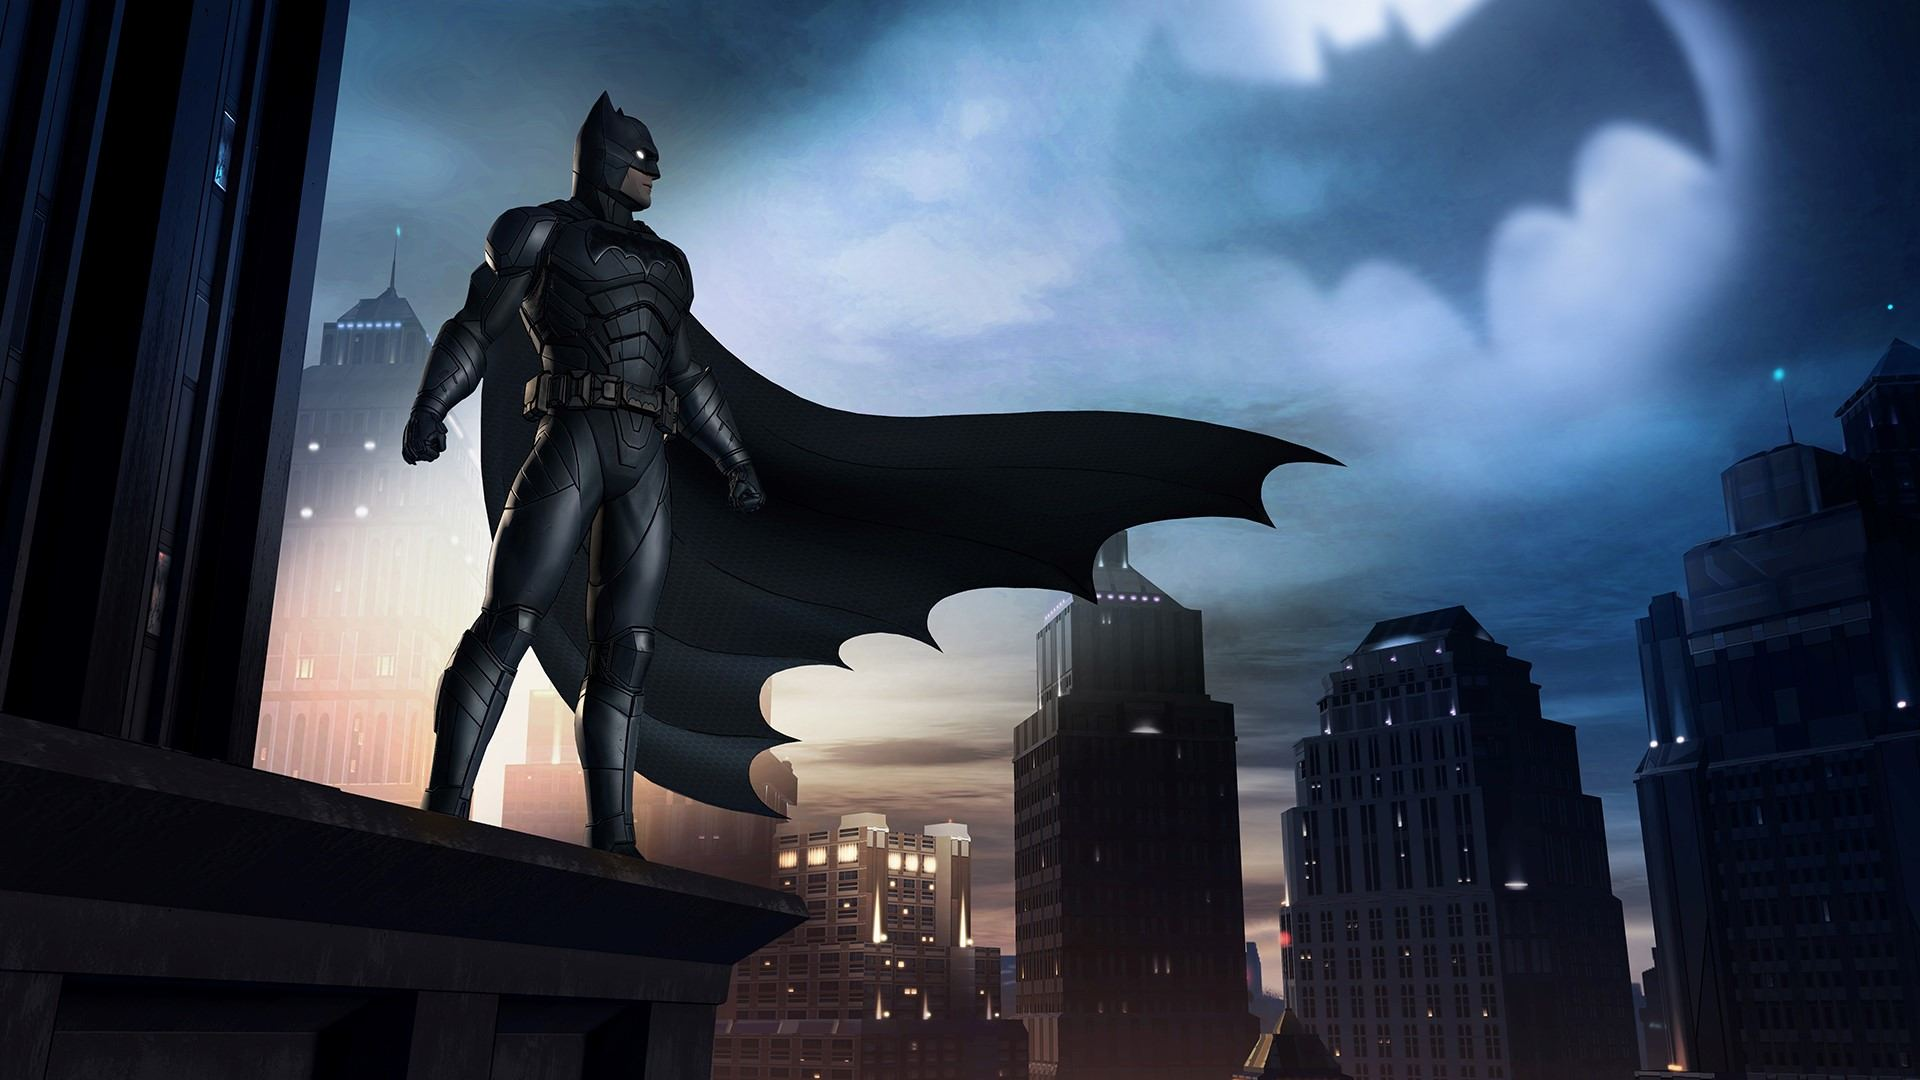 Batman-The-Enemy-Within-Episode-2-The-Pact-batman_1920x1080.jpg